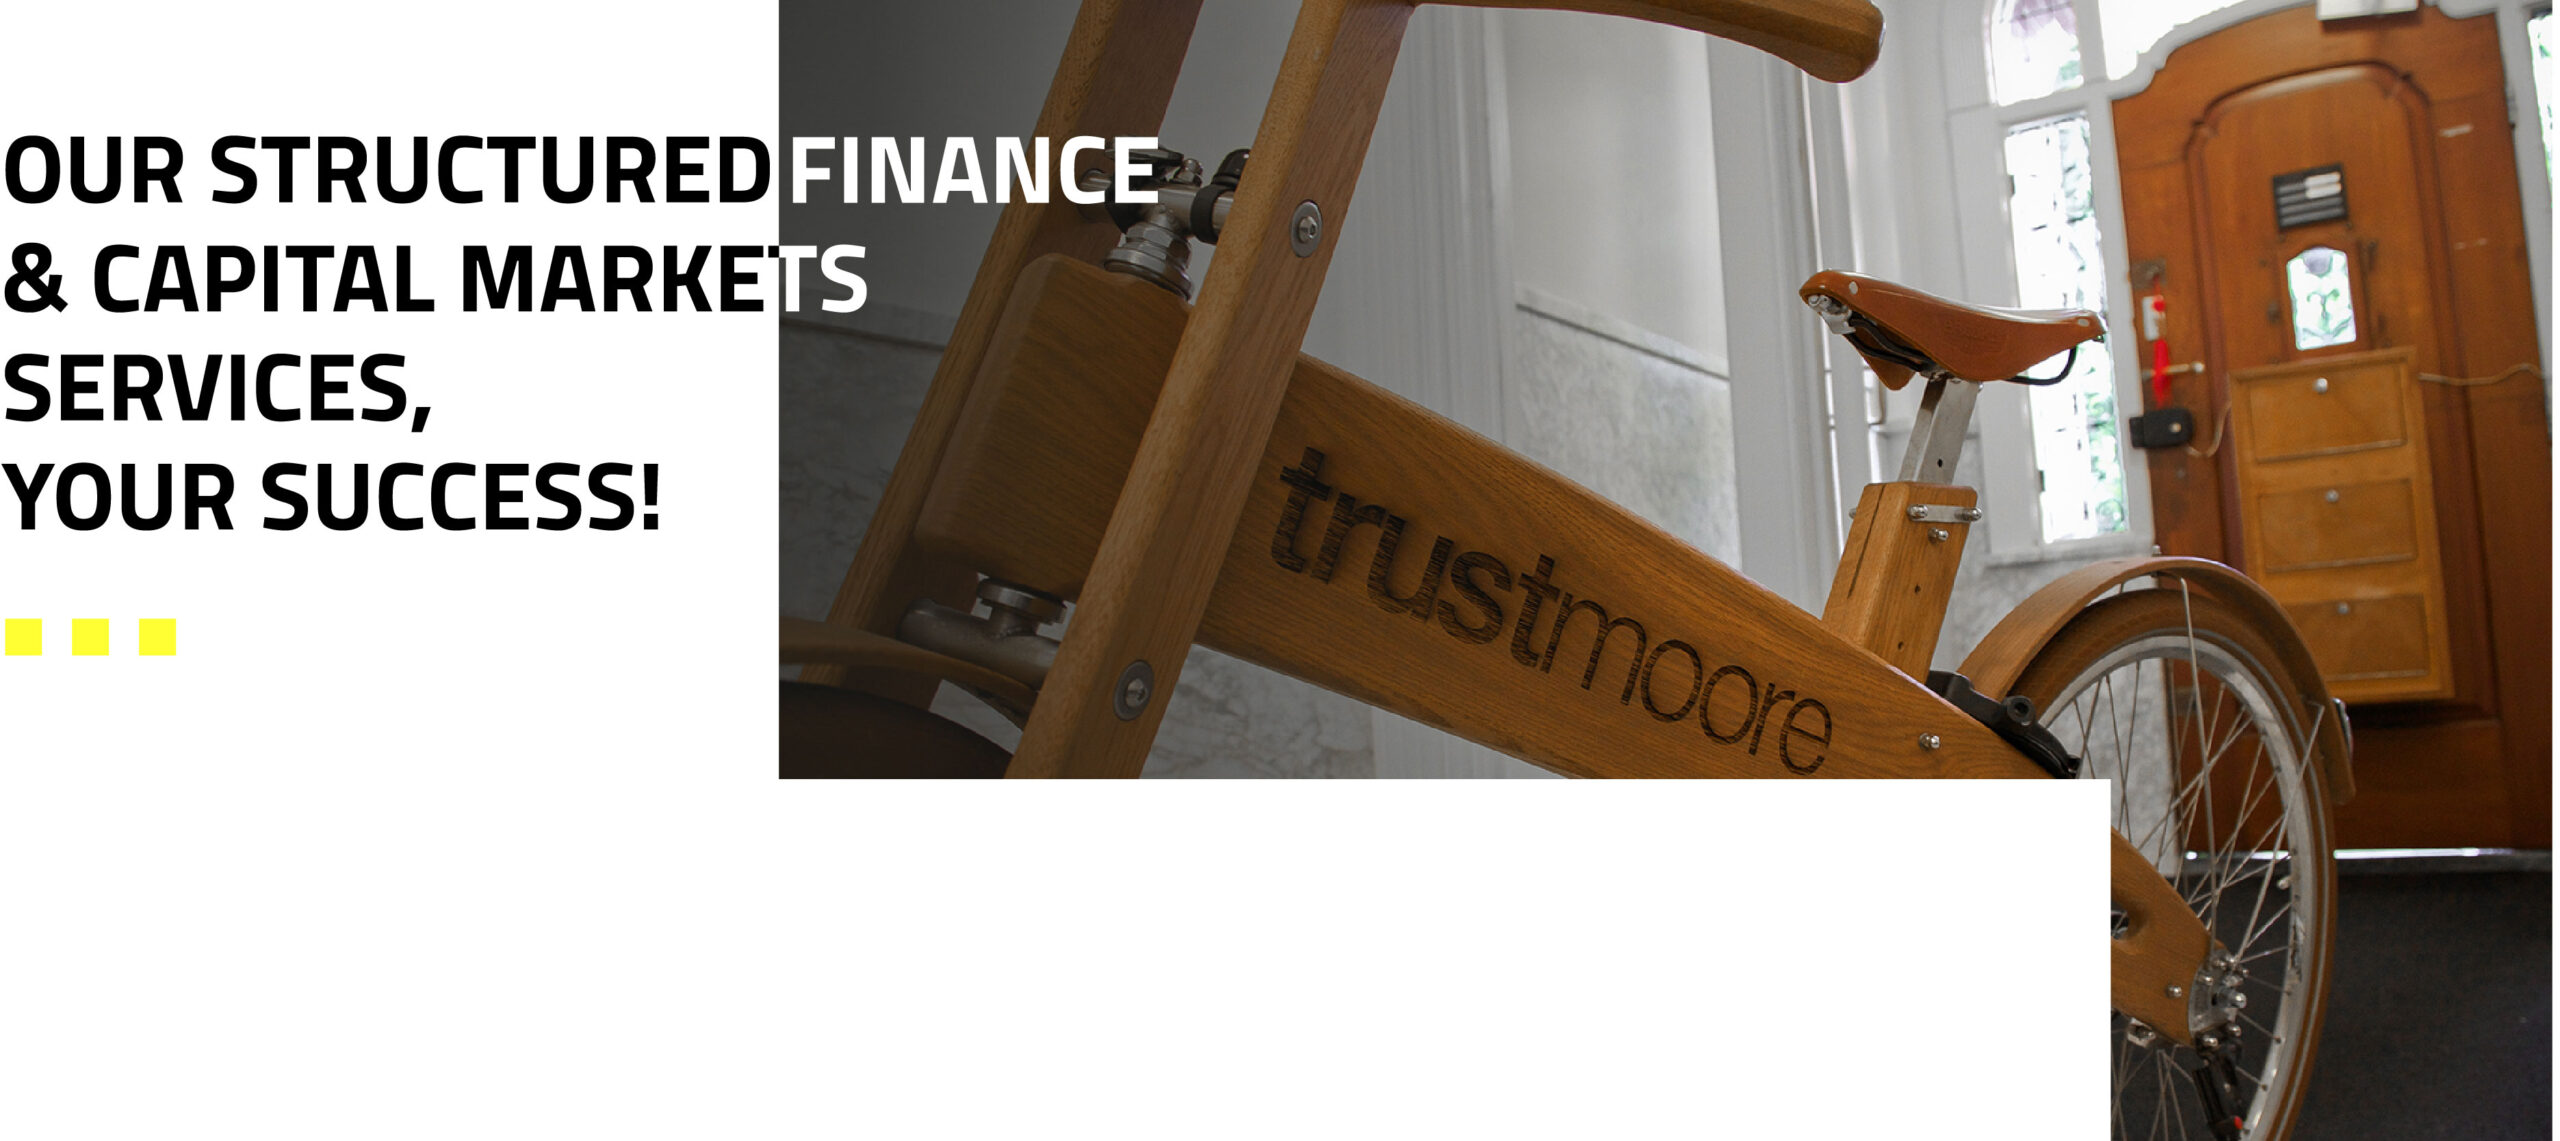 Trustmoore Structured Finance & Capital Markets services, your success!